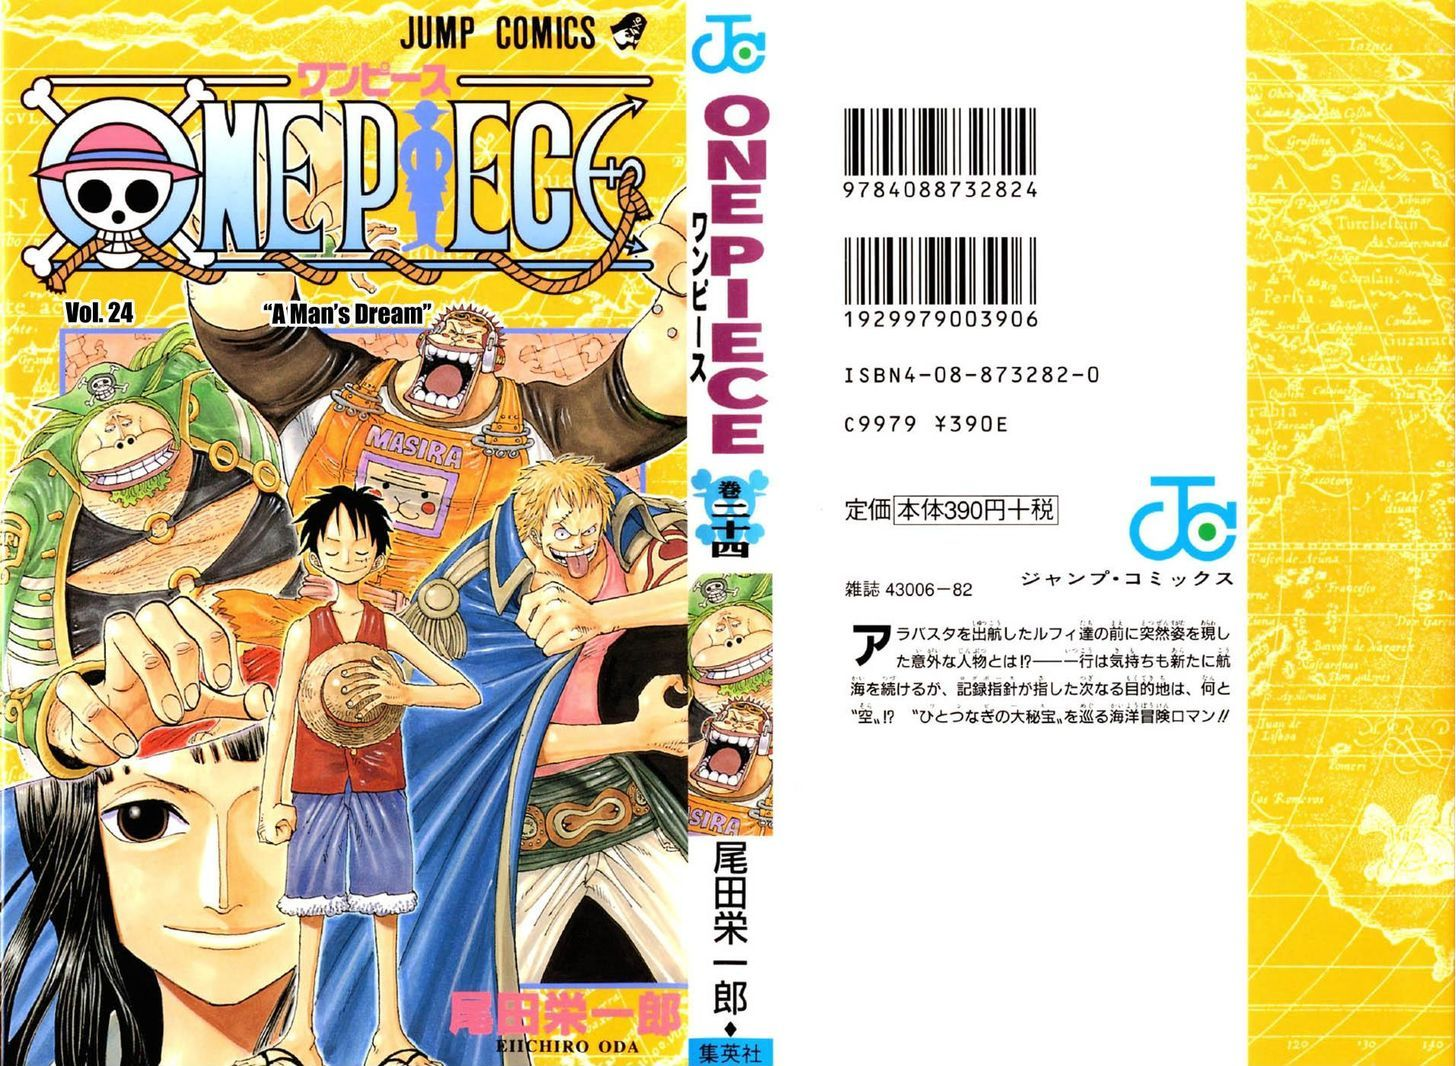 https://im.nineanime.com/comics/pic9/32/96/2565/OnePiece2170597.jpg Page 1